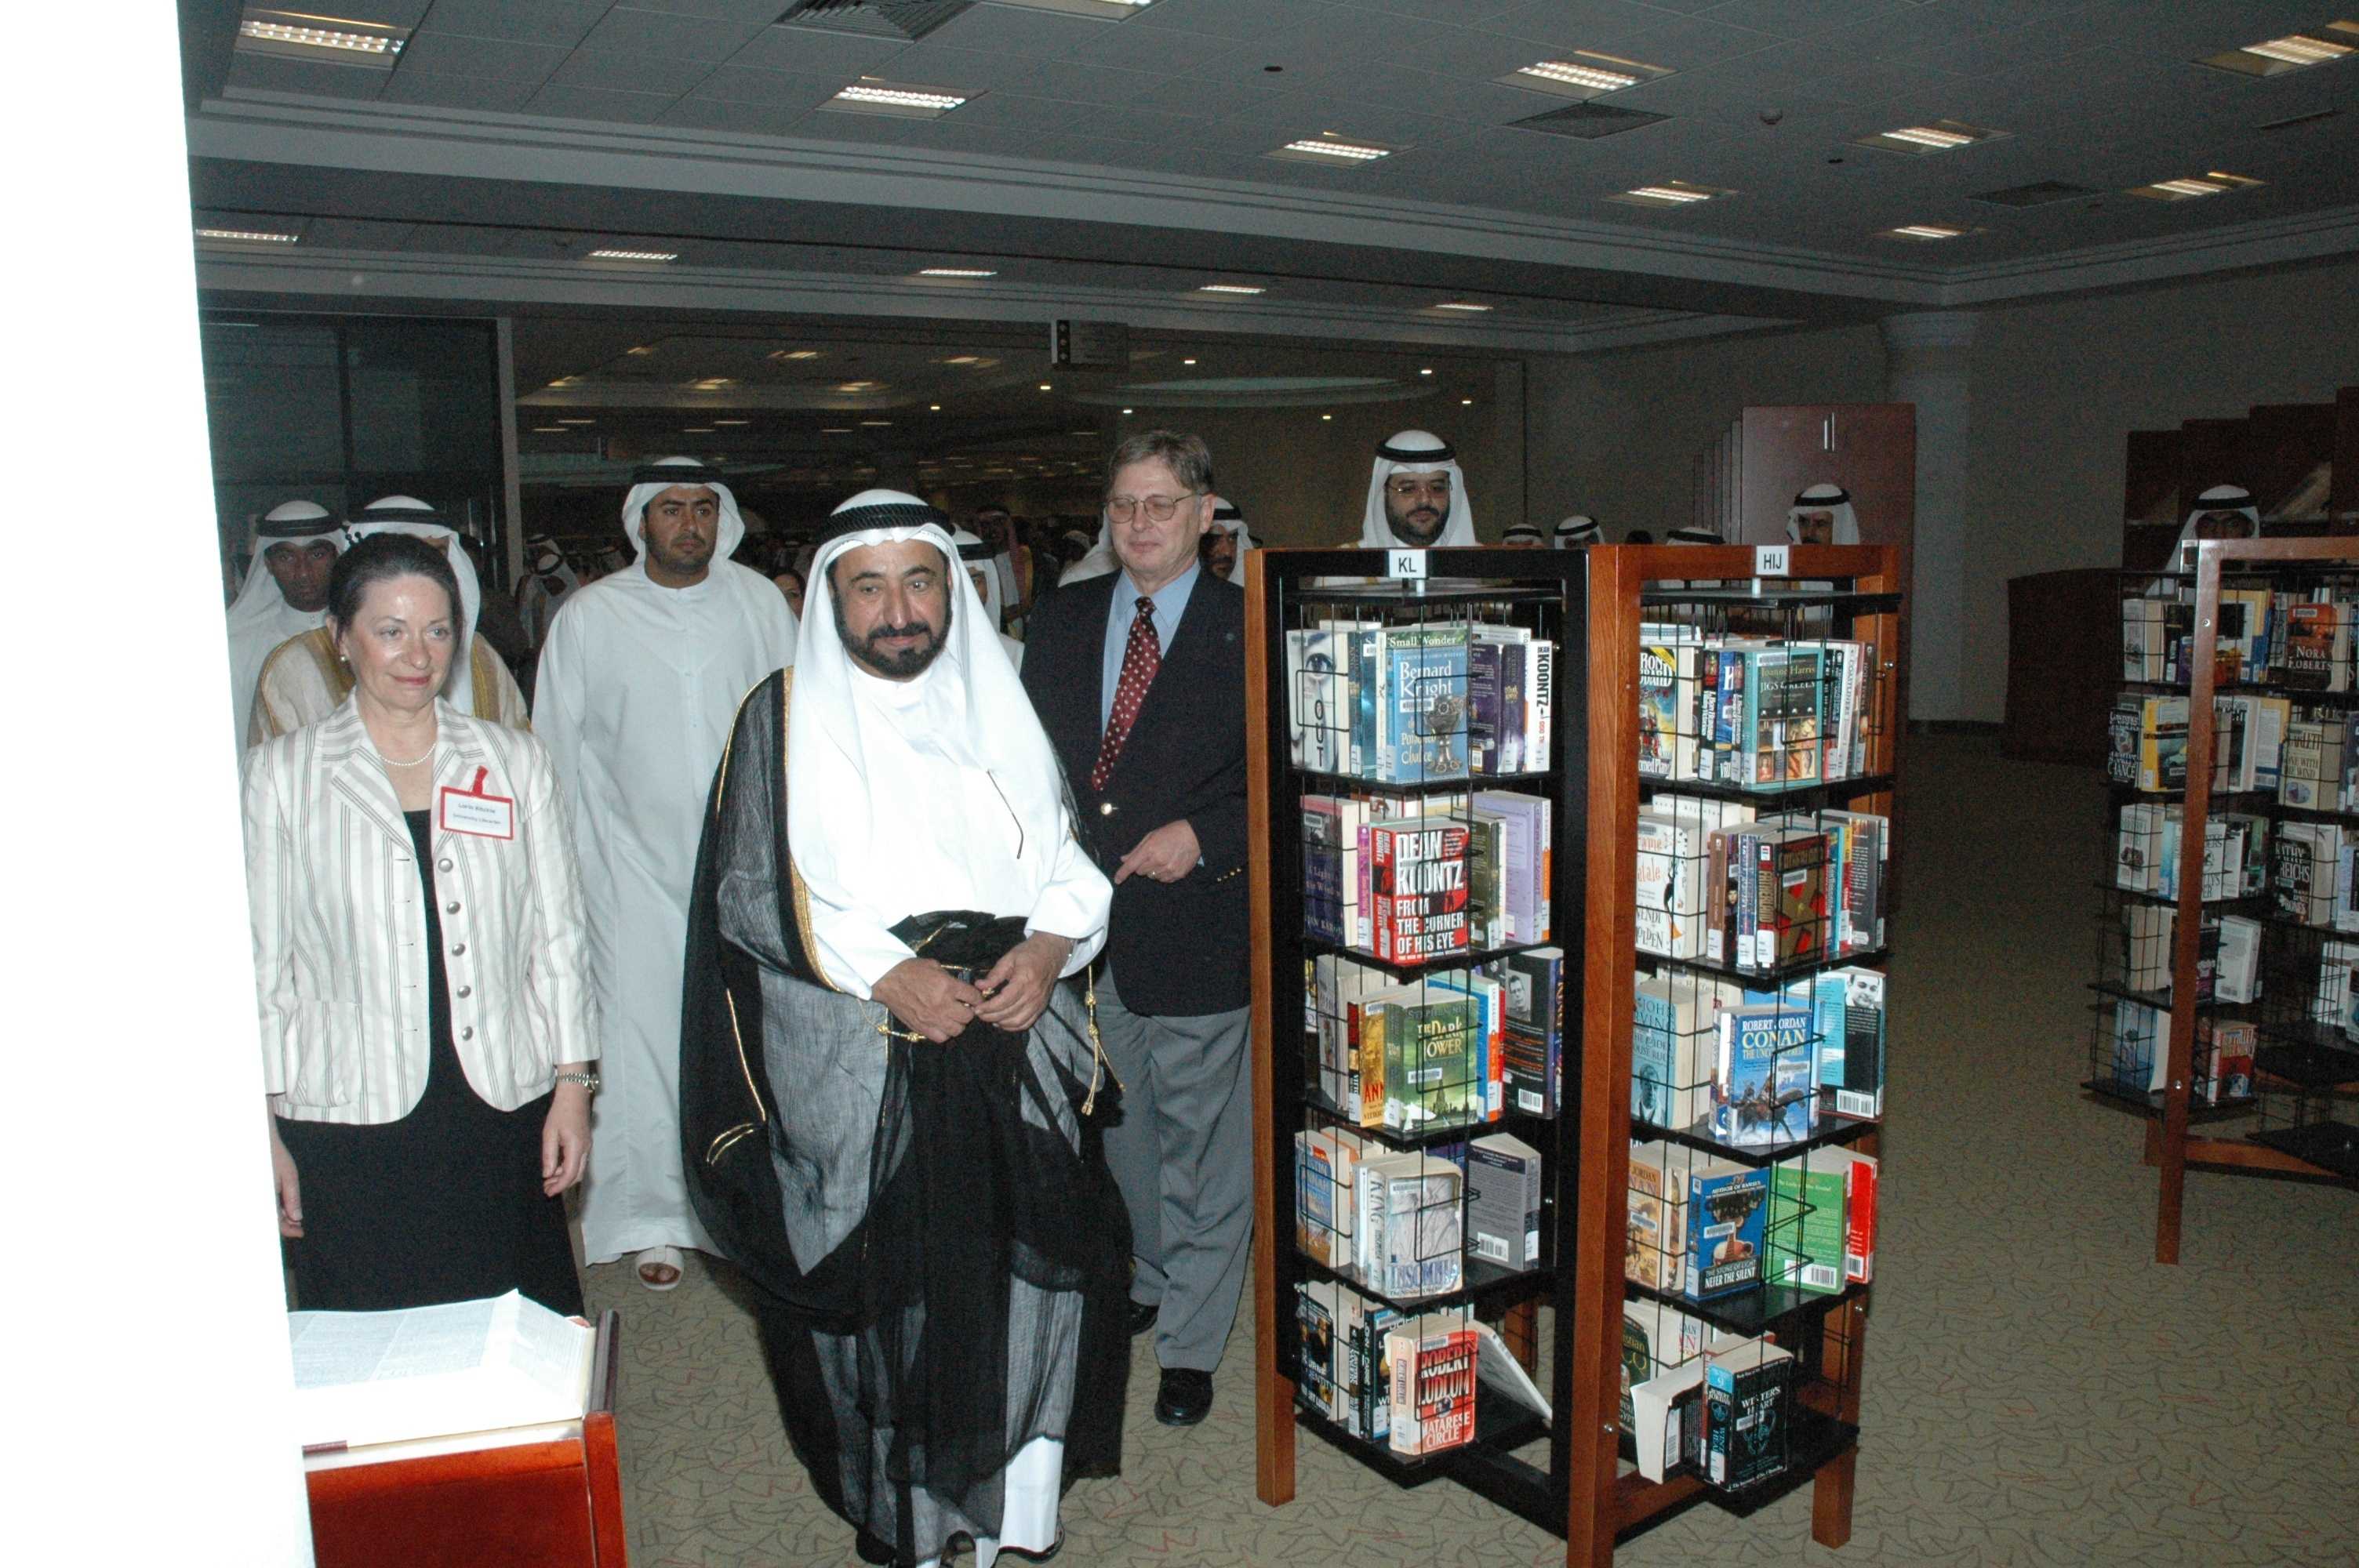 American_University_of_Sharjah_Library_12.jpg